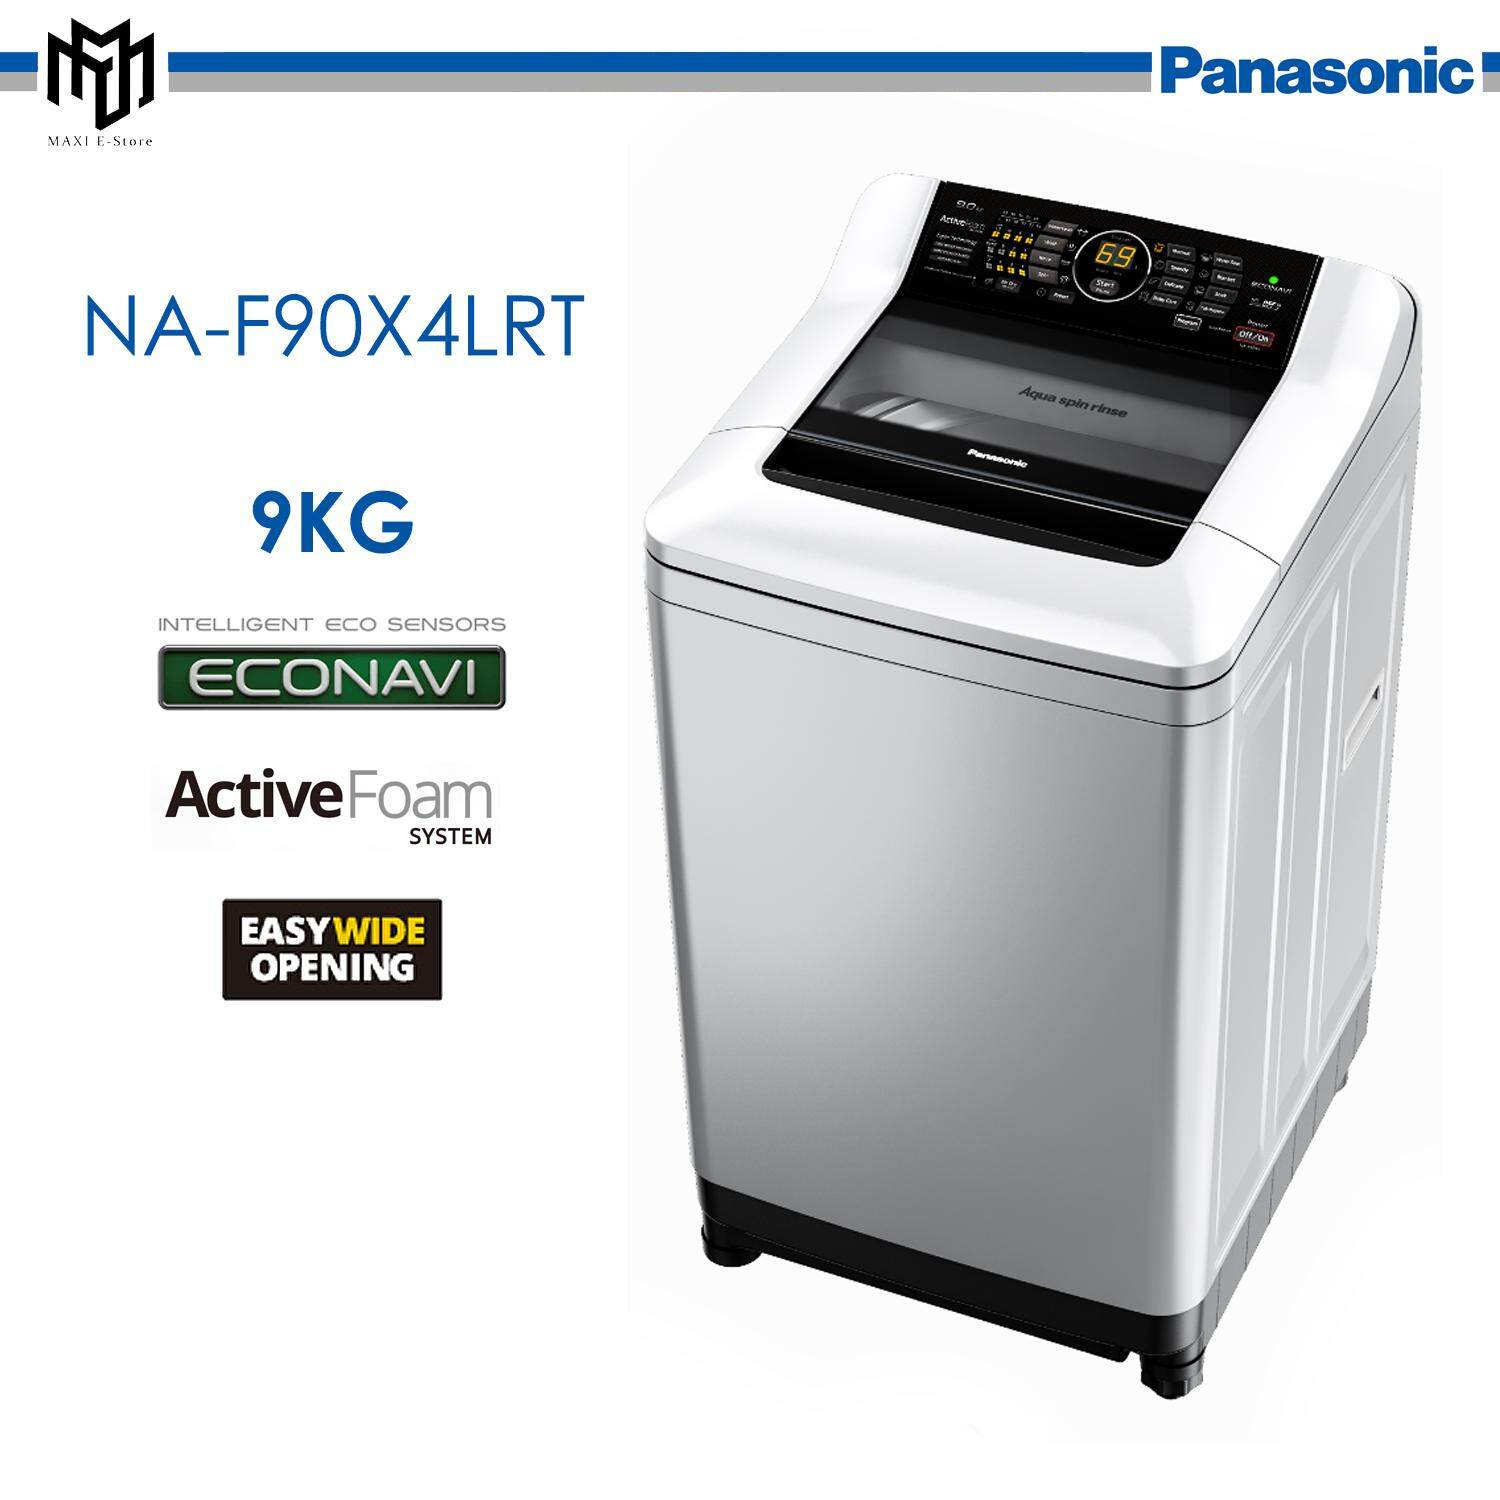 Panasonic 9.0KG Top Load Washing Machine with Active Foam ECONAVI NA-F90X4LRT